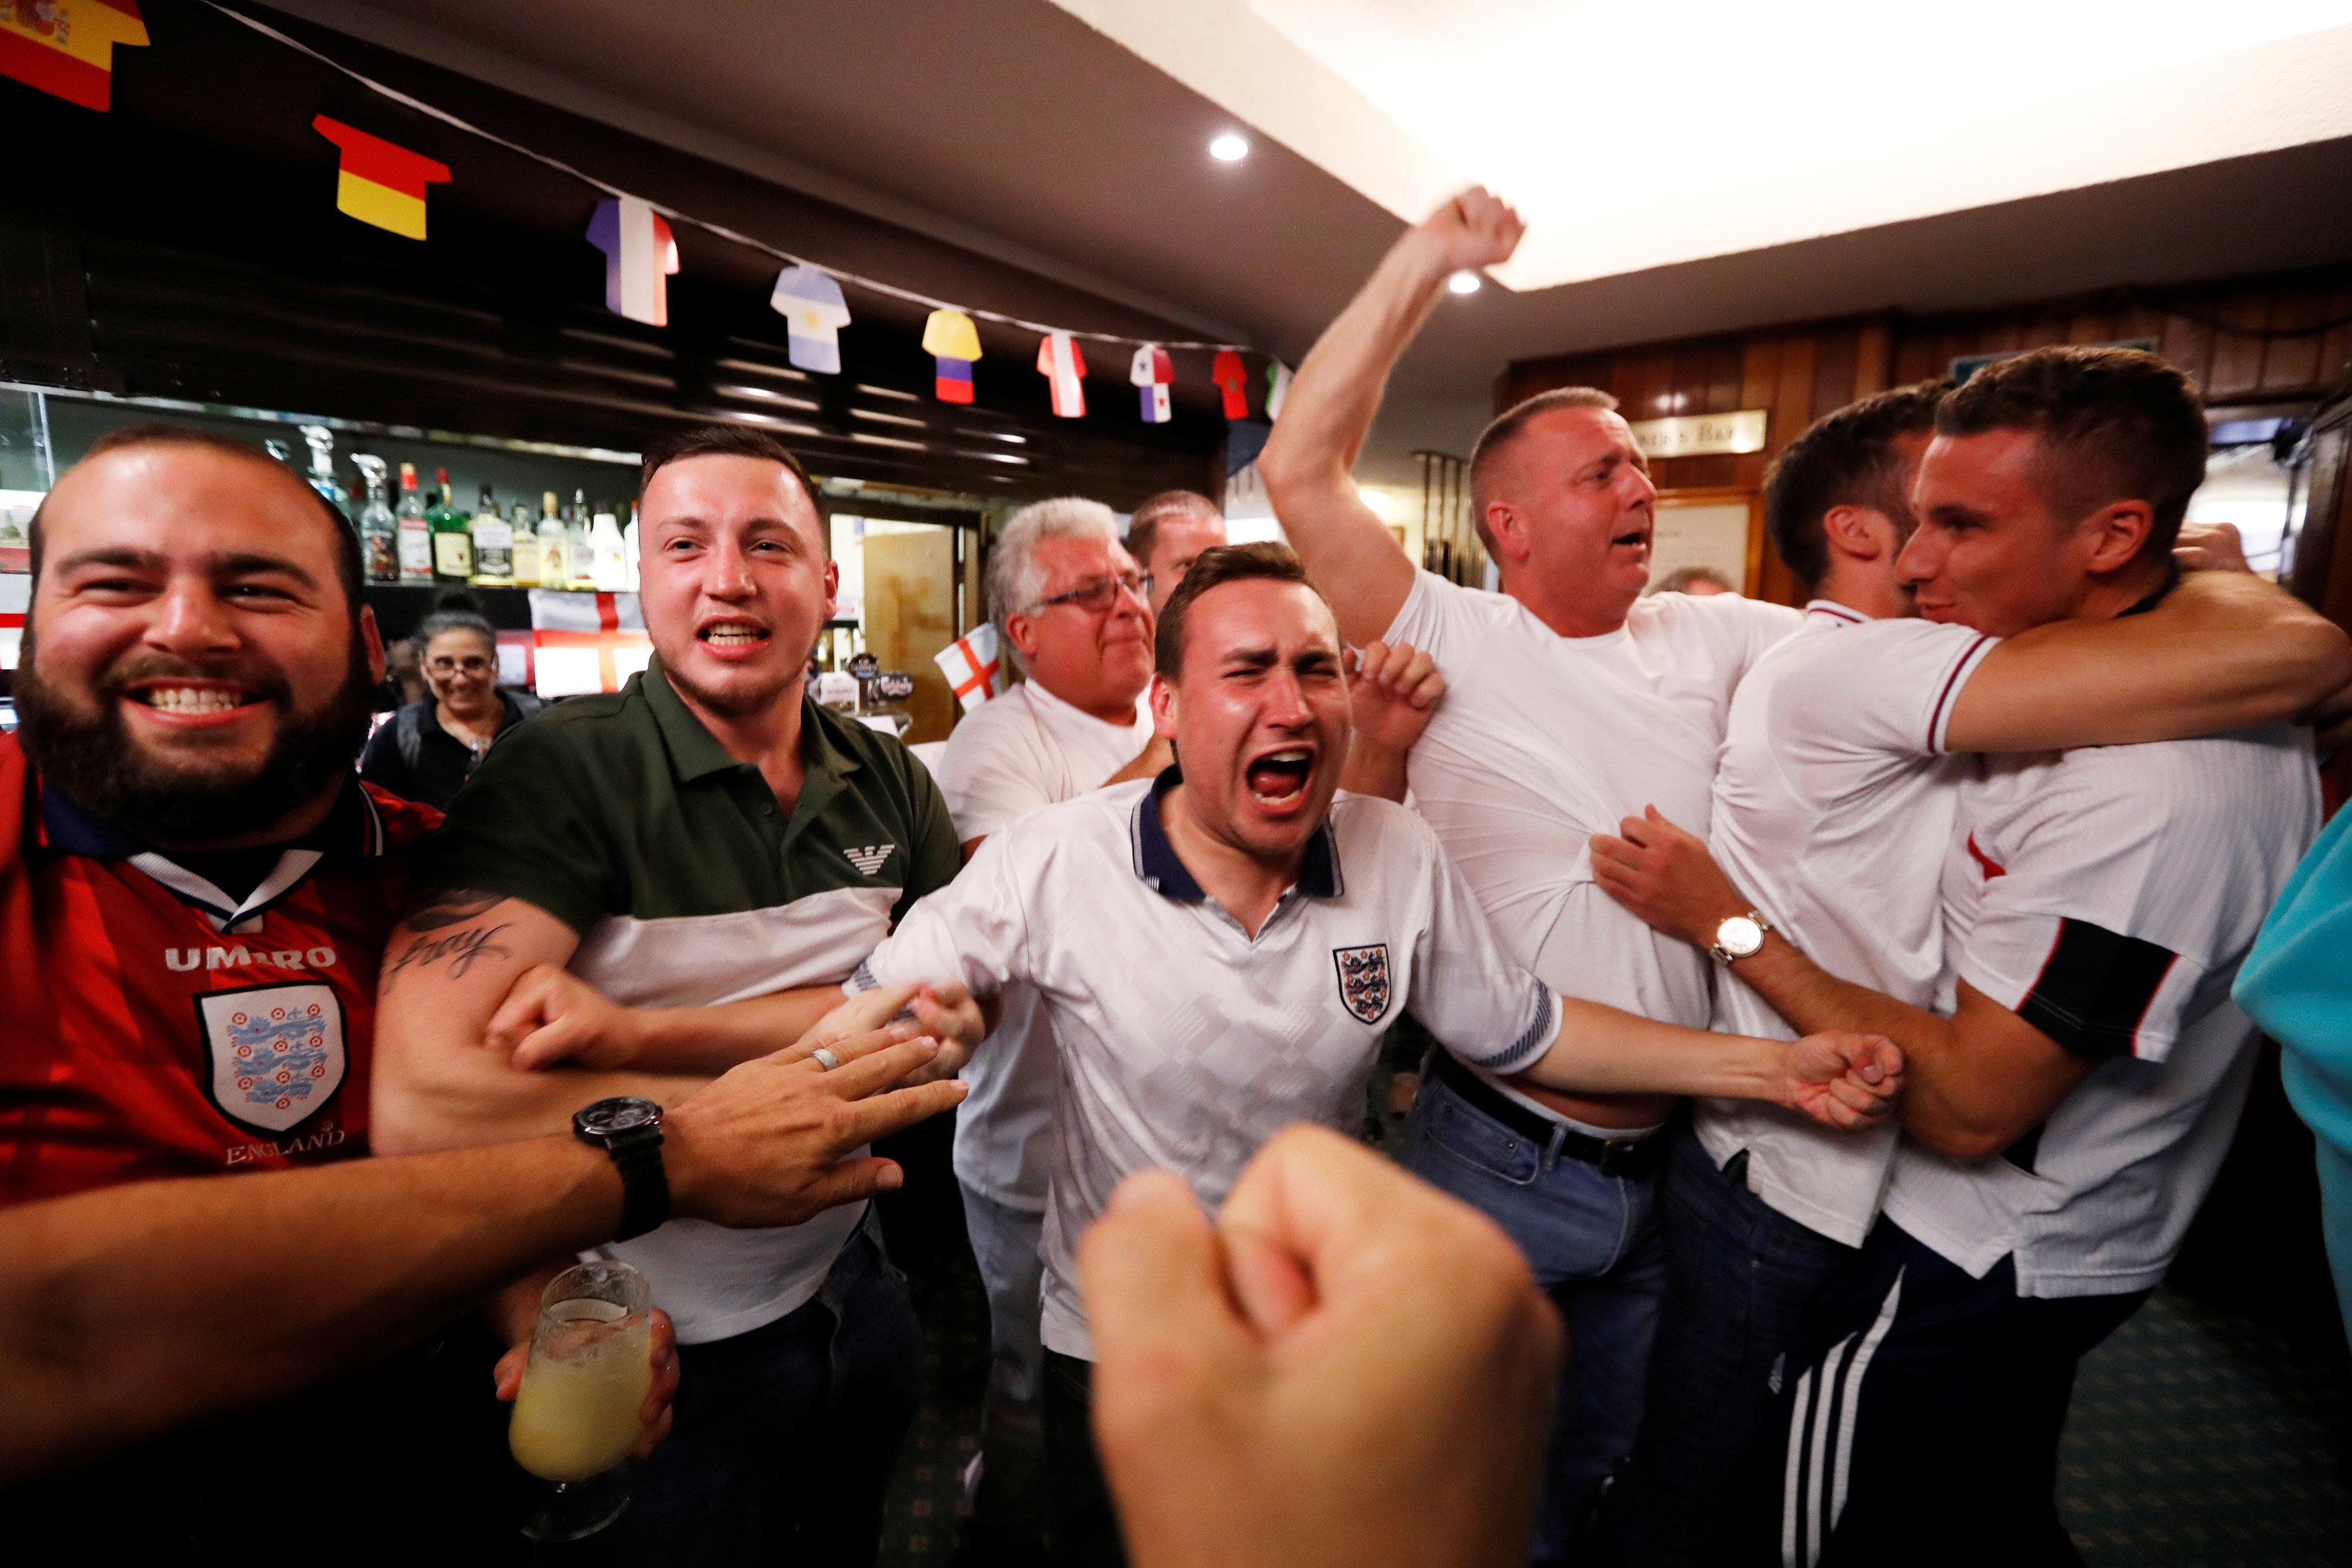 Fans at a pub in Southgate, London go bonkers as England take an early lead against Croatia